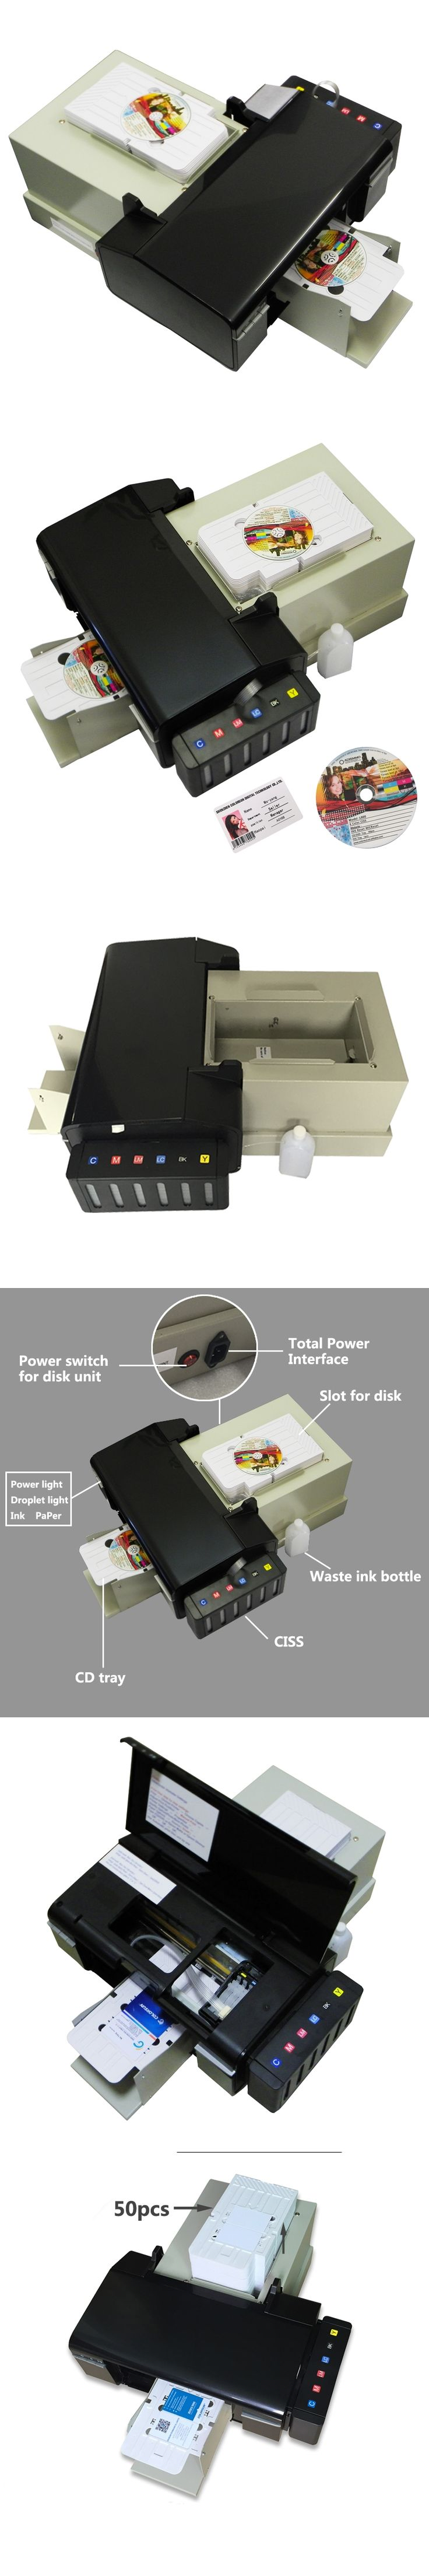 Multifunctional and Economic CD/DVD/PVC card printer on hot sales